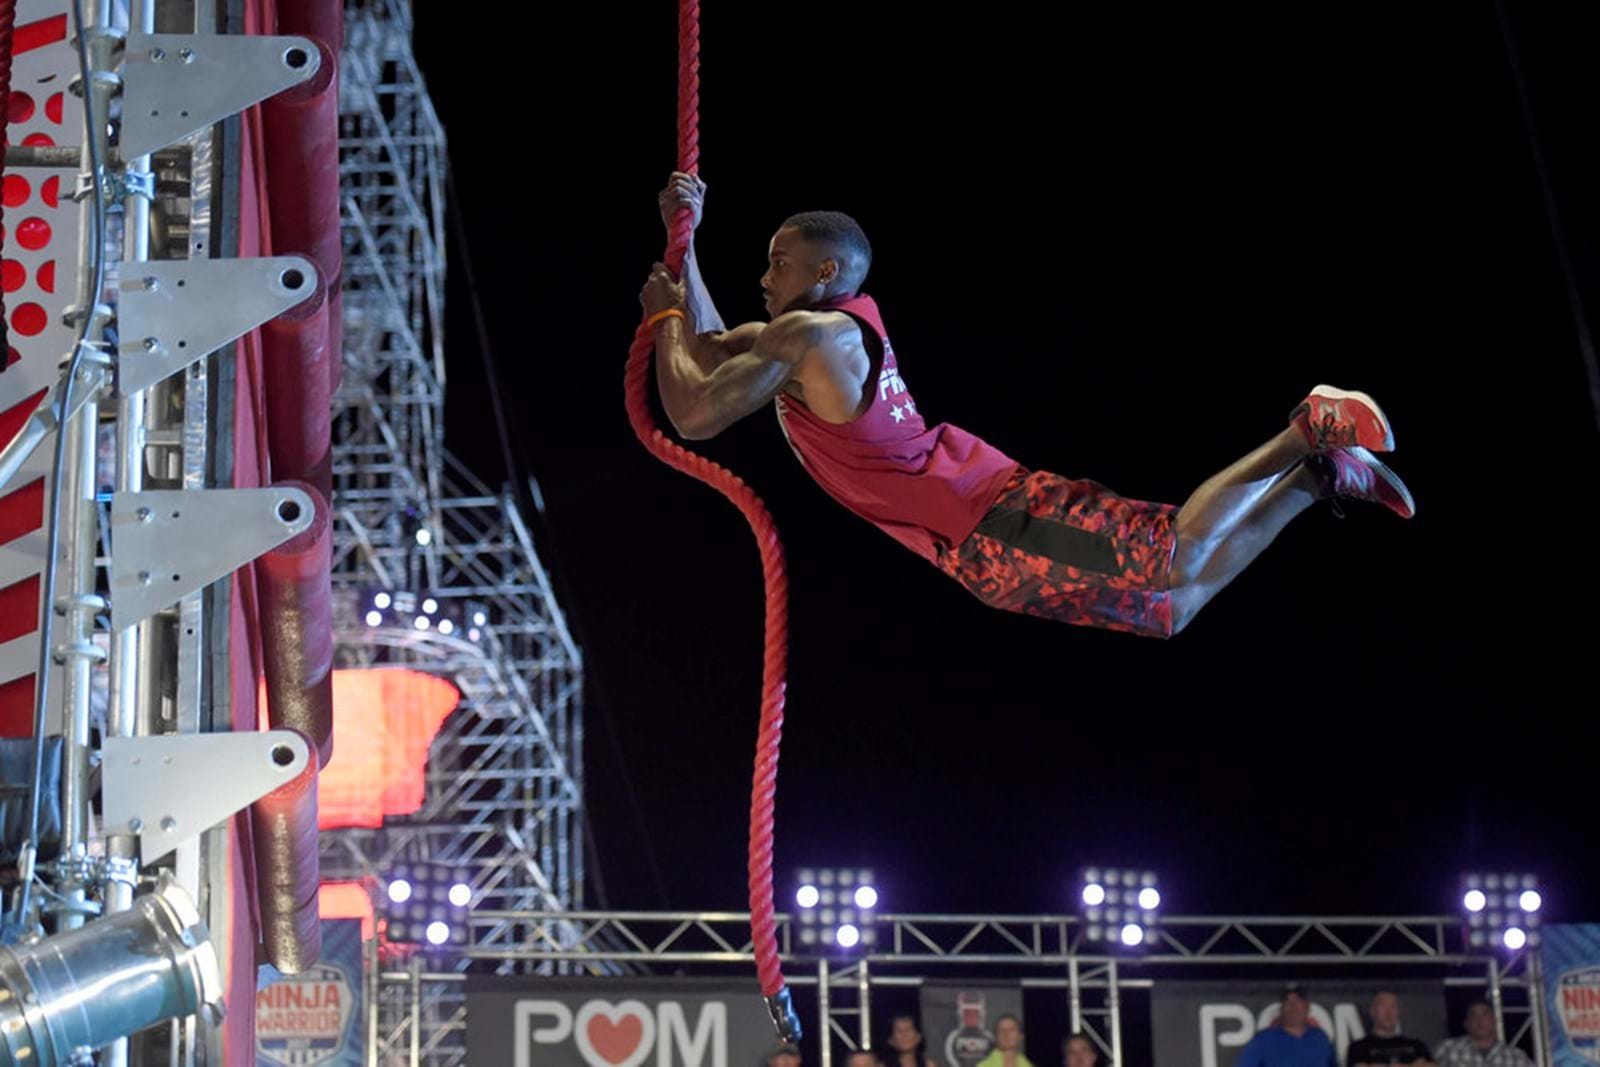 AMERICAN NINJA WARRIOR NOMINATED FOR A 2017 NICKELODEON KIDS' CHOICE AWARD